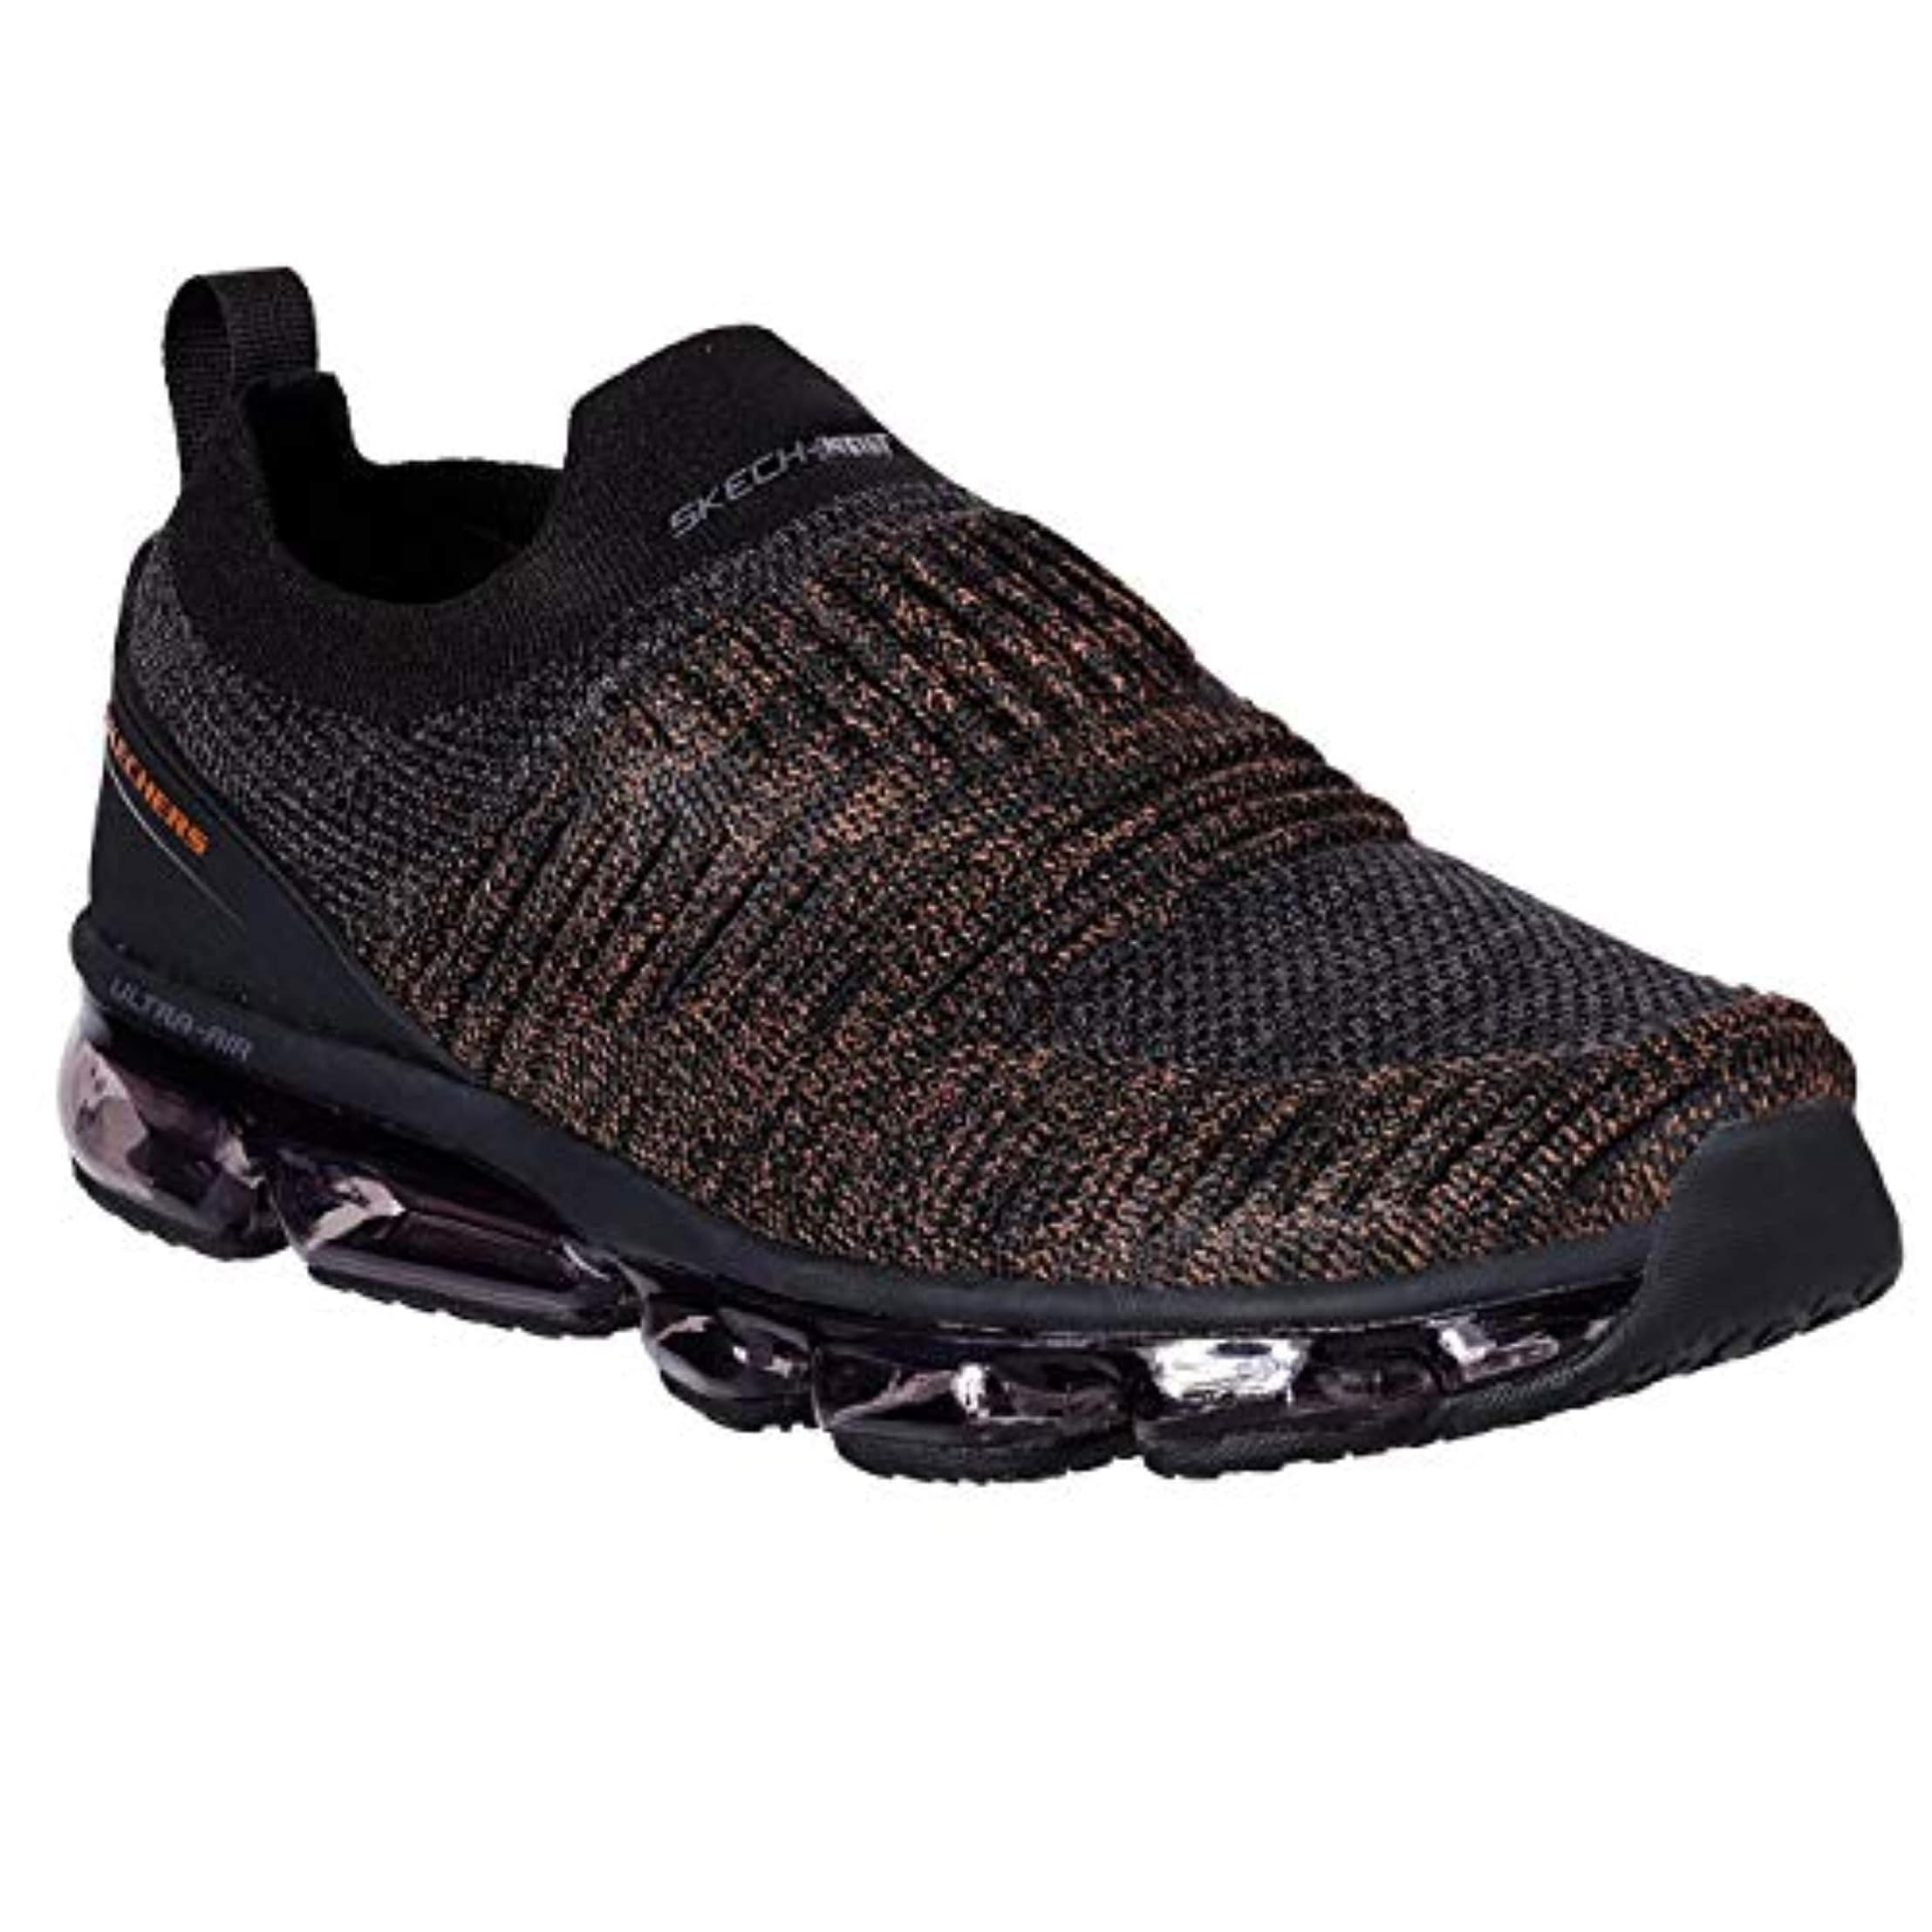 Buy Skechers Men's Athletic Shoes Online at Overstock | Our